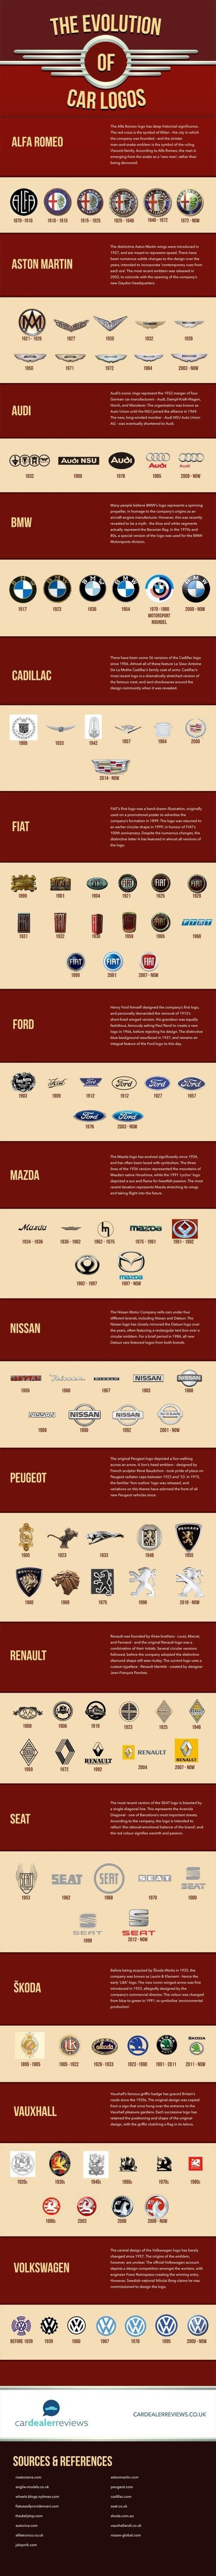 The History and Evolution of Automobile Logos | Marketing Technology | Integrated Brand Communications | Scoop.it